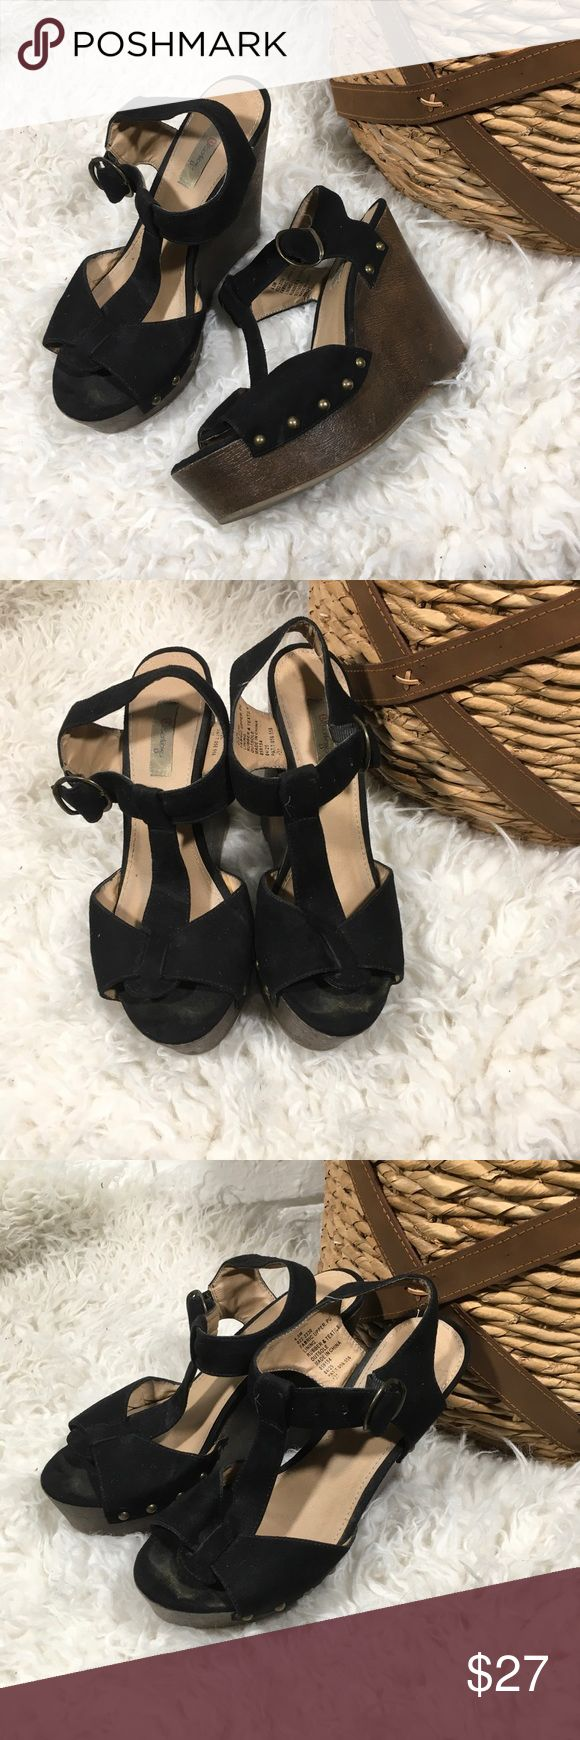 Olsenboye Black T-Strap Platform Wedges These are so cute but do have signs of wear, see pictures. Olsenboye Shoes Wedges